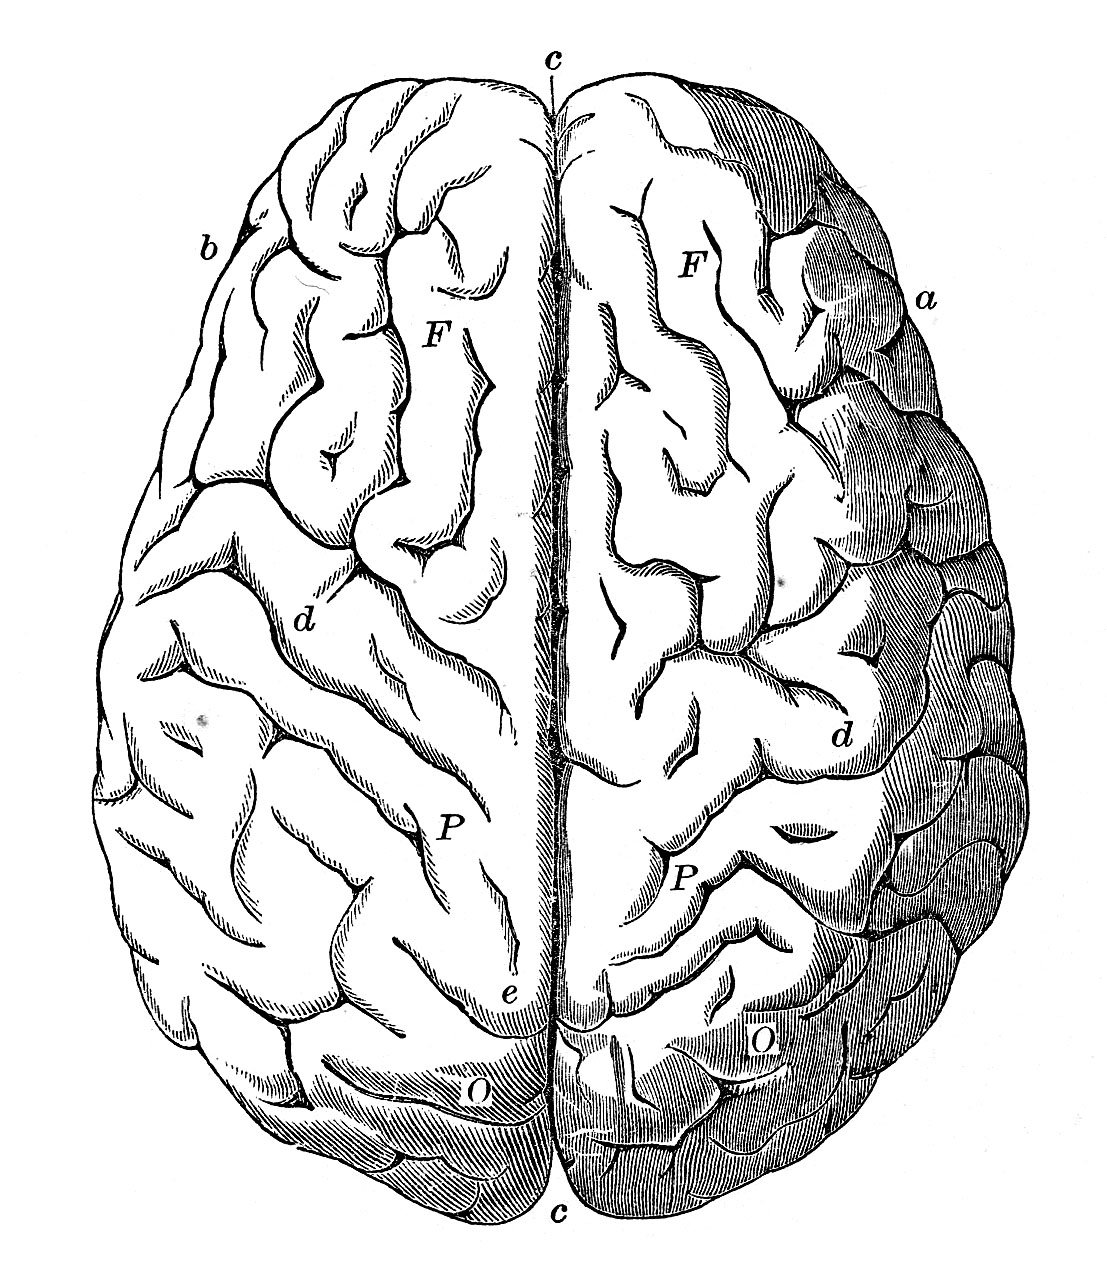 Library Of Brain Frontal View Svg Royalty Free Stock Black